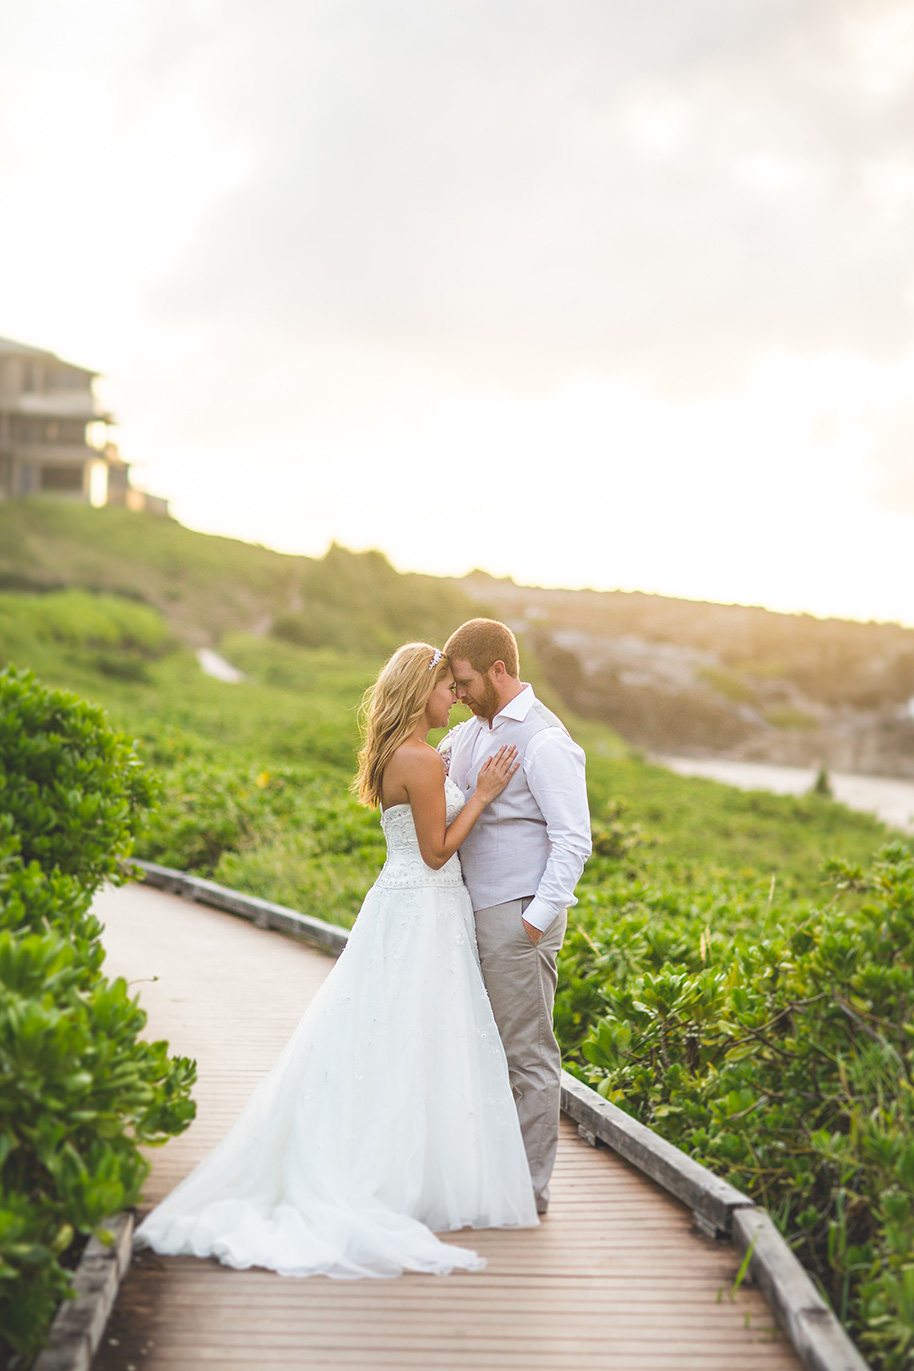 Maui-Beach-Wedding-042816-29